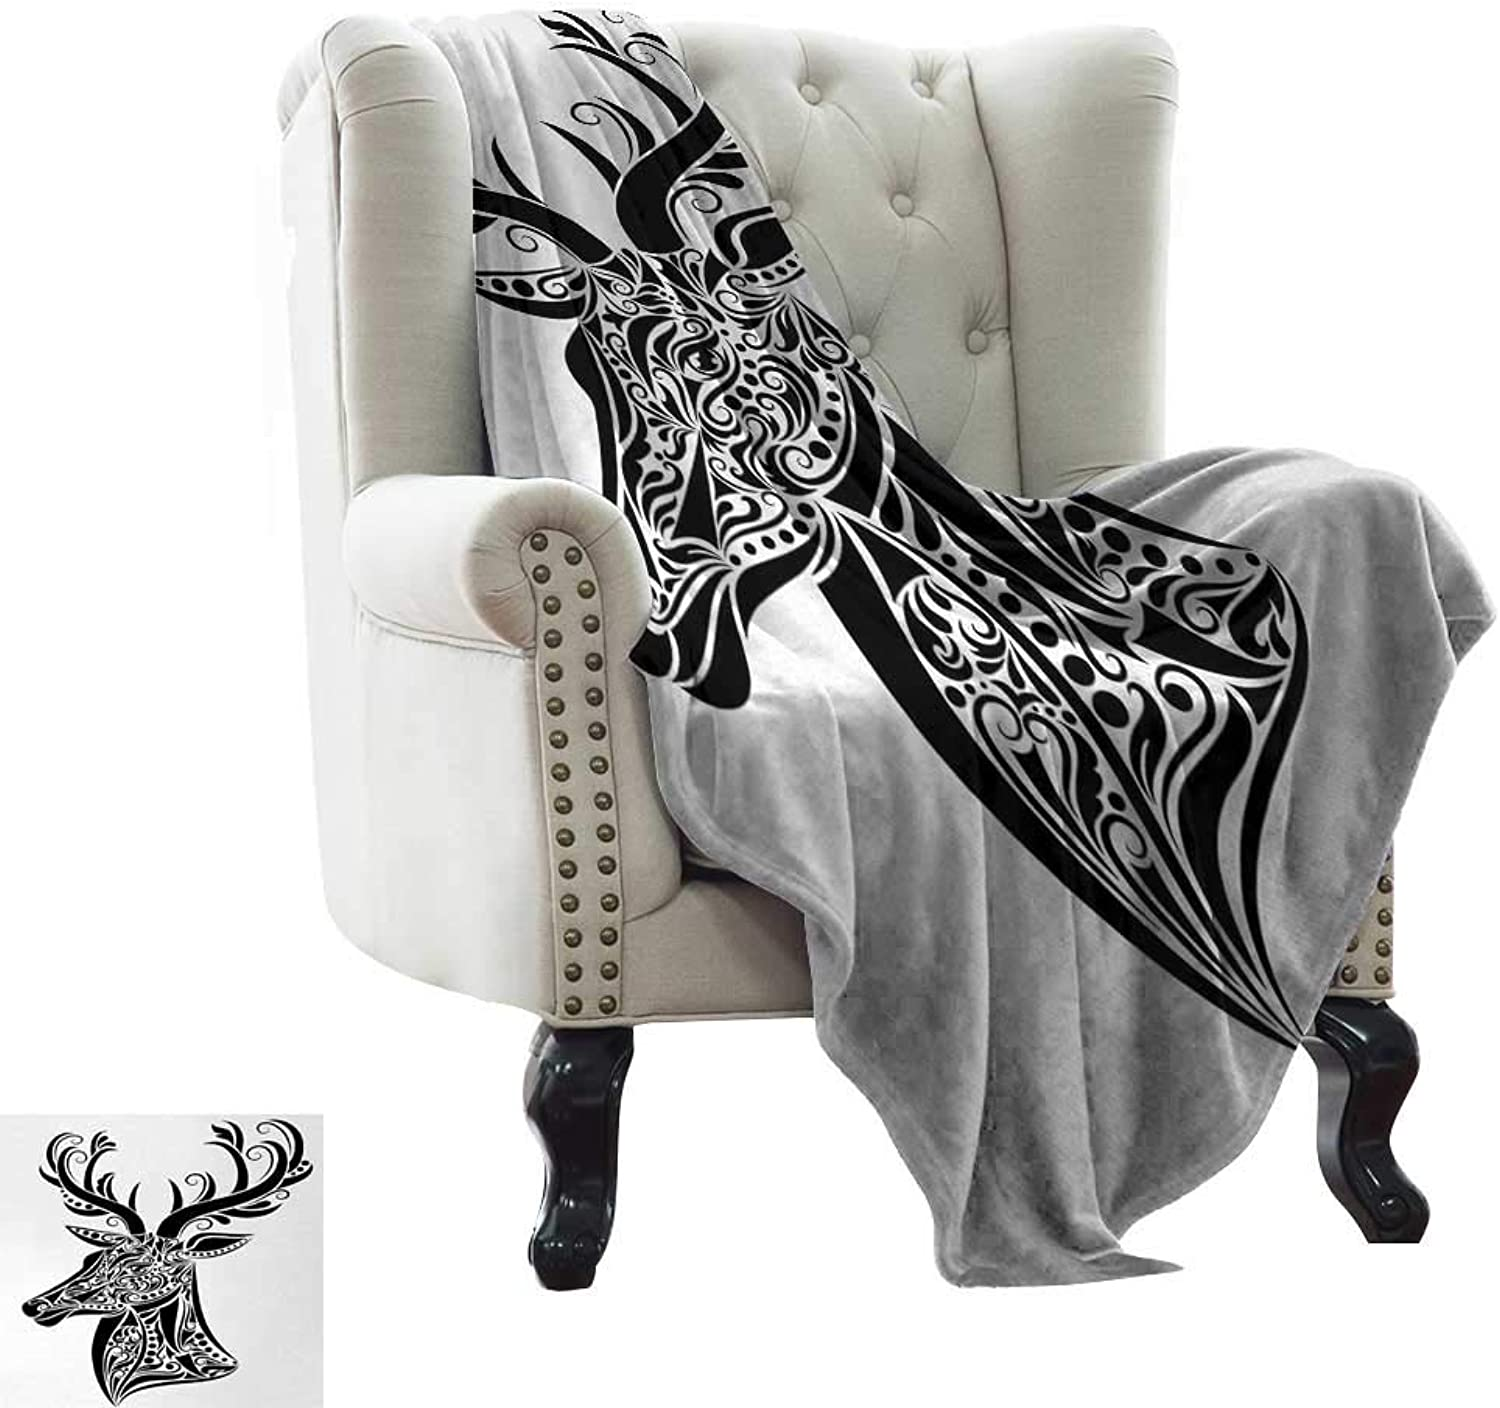 BelleAckerman Weighted Blanket for Kids Antlers,Tattoo Pattern in The Shape of a Deer Creative Portrait in Black and White colors,Black White Warm Blanket for Autumn Winter 50 x60